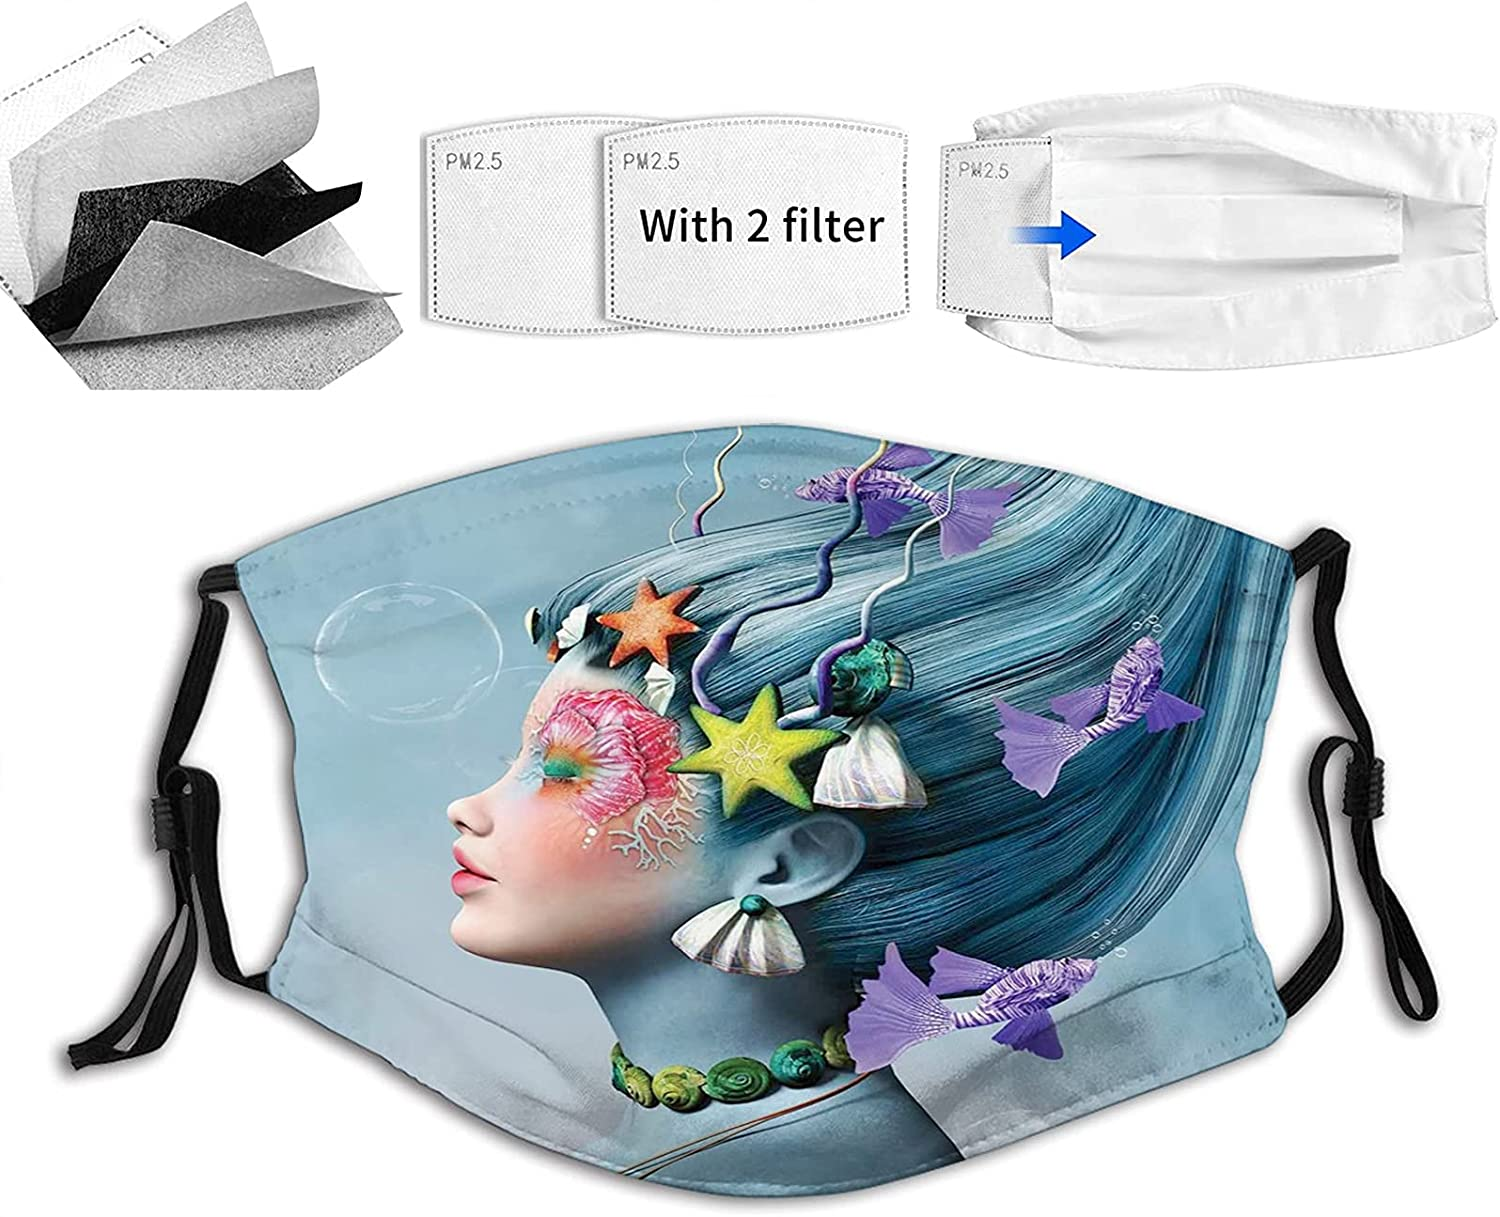 Comfortable Max 72% OFF specialty shop Printed mask Woman with up Underwater Themed Ha Make